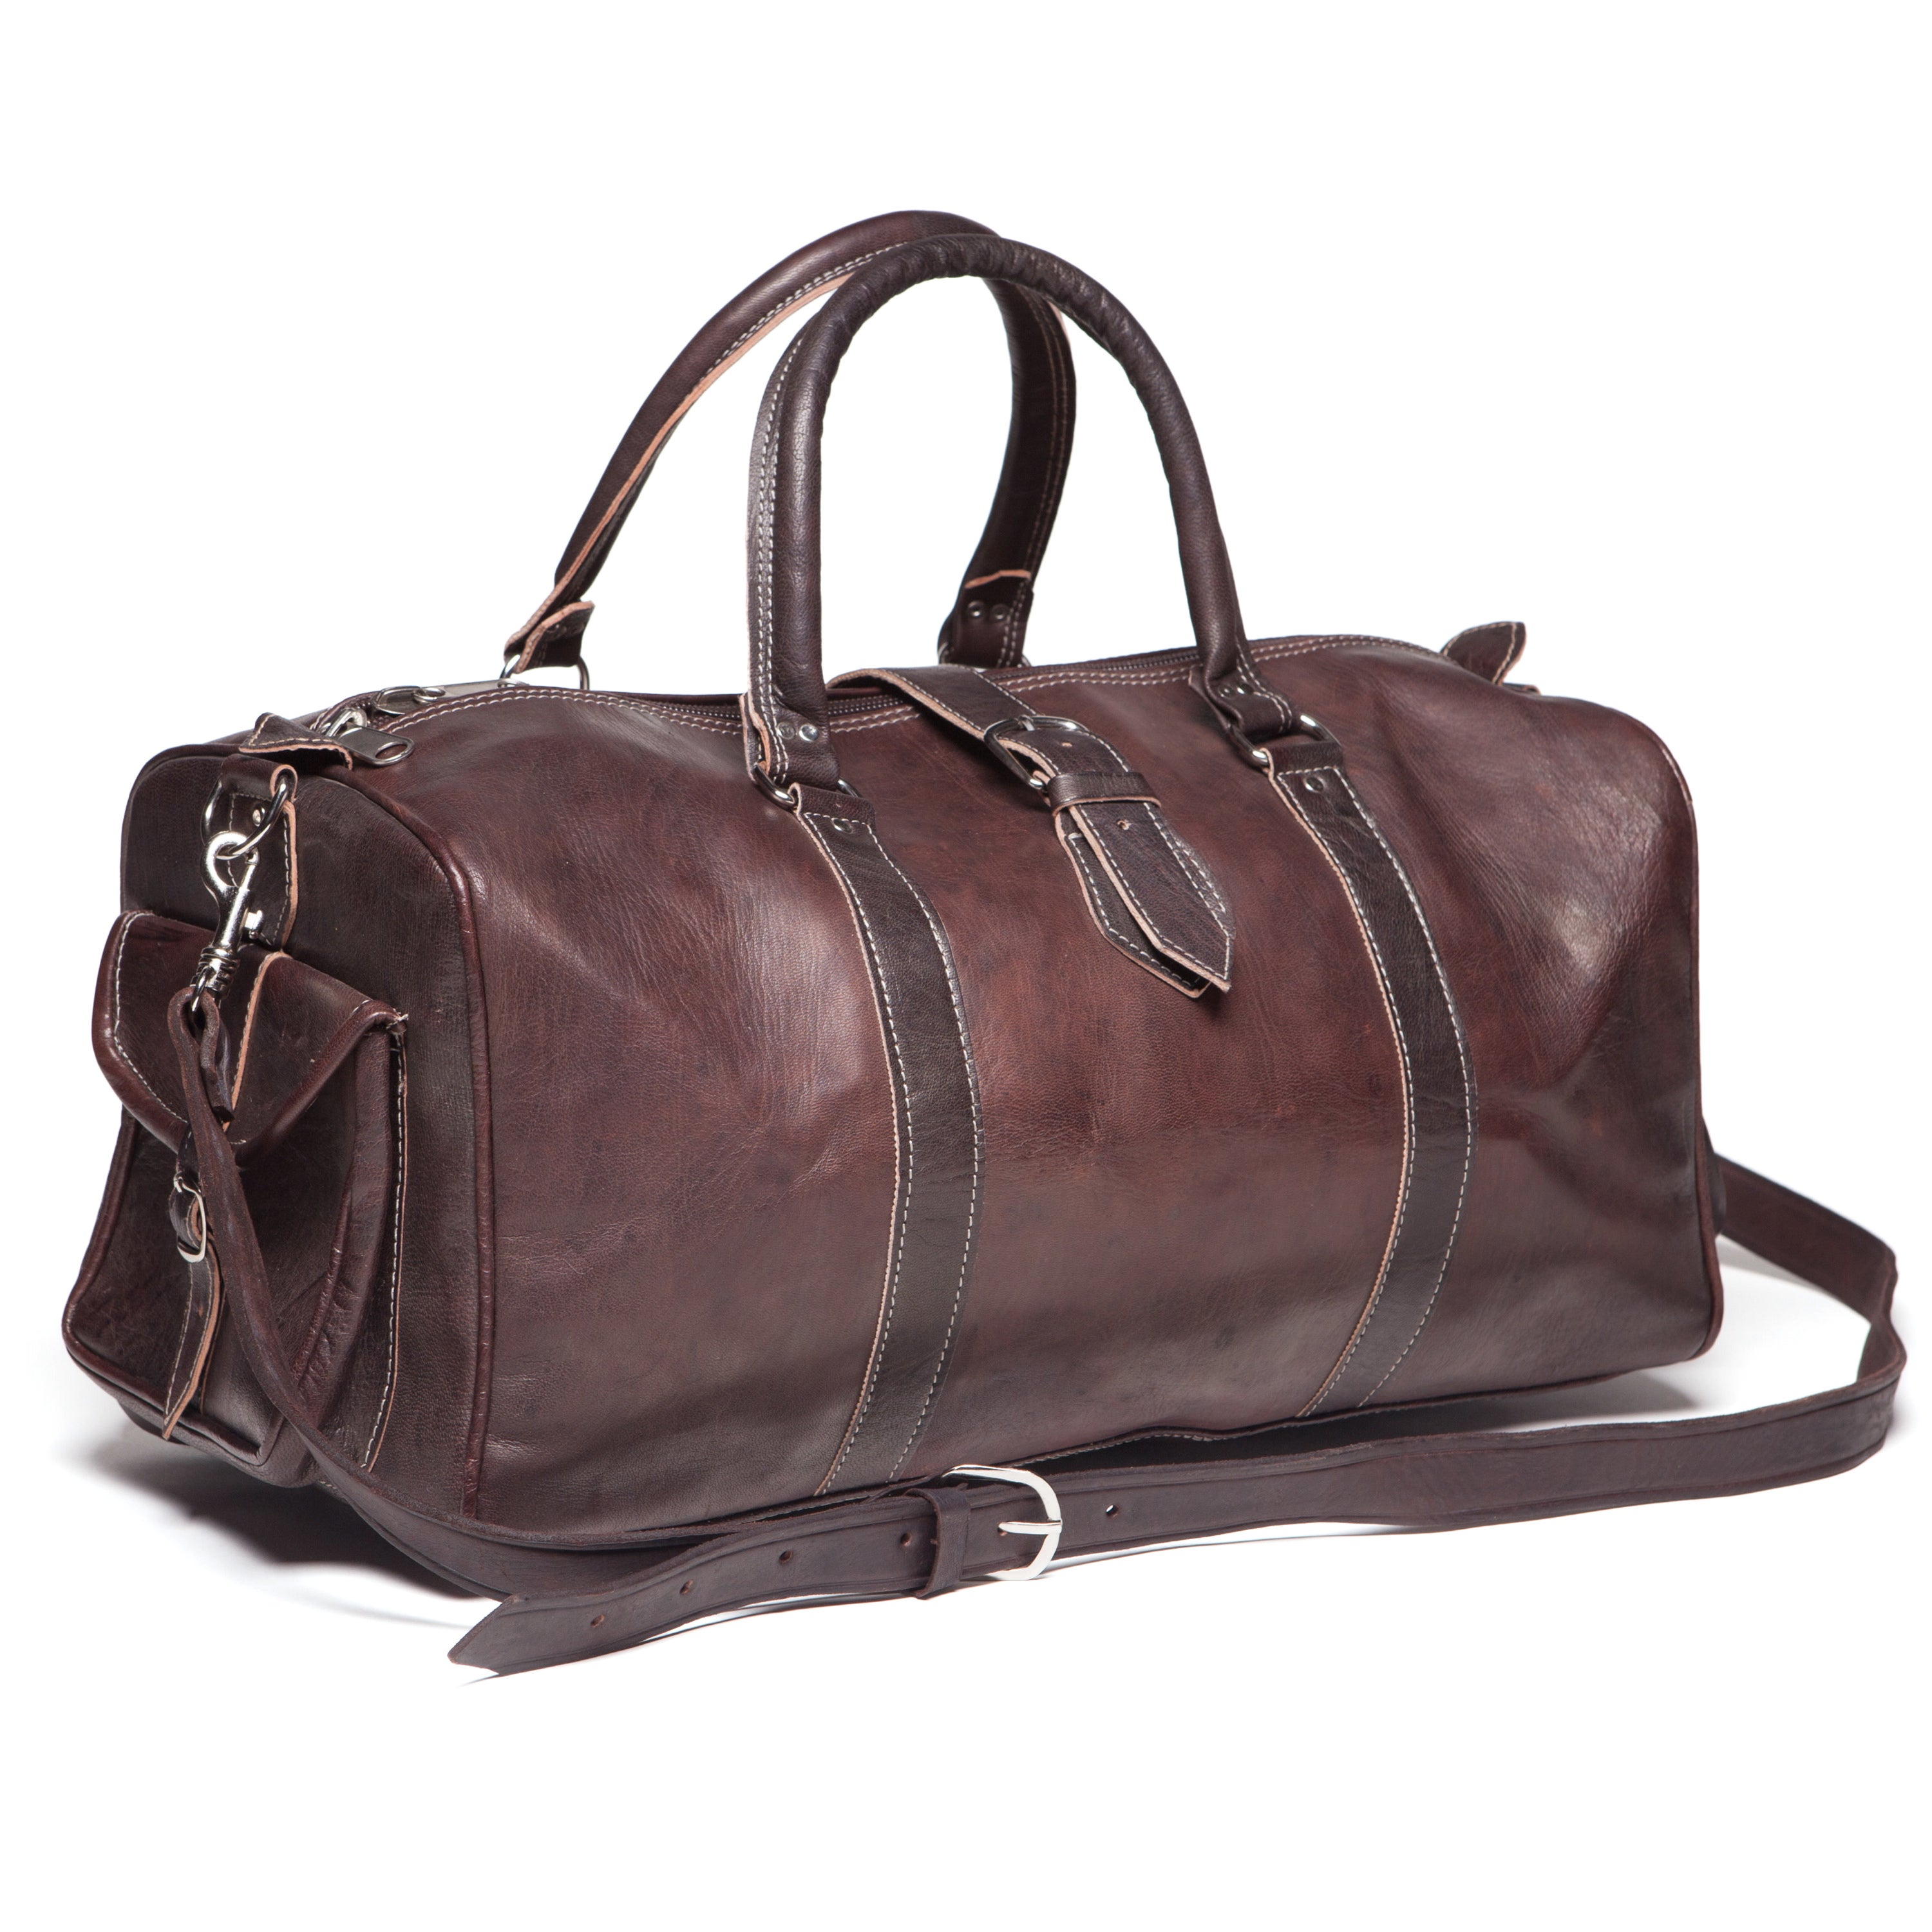 Shop Handmade Leather Duffle Bag (Morocco) - Free Shipping Today ... 89d3570a90